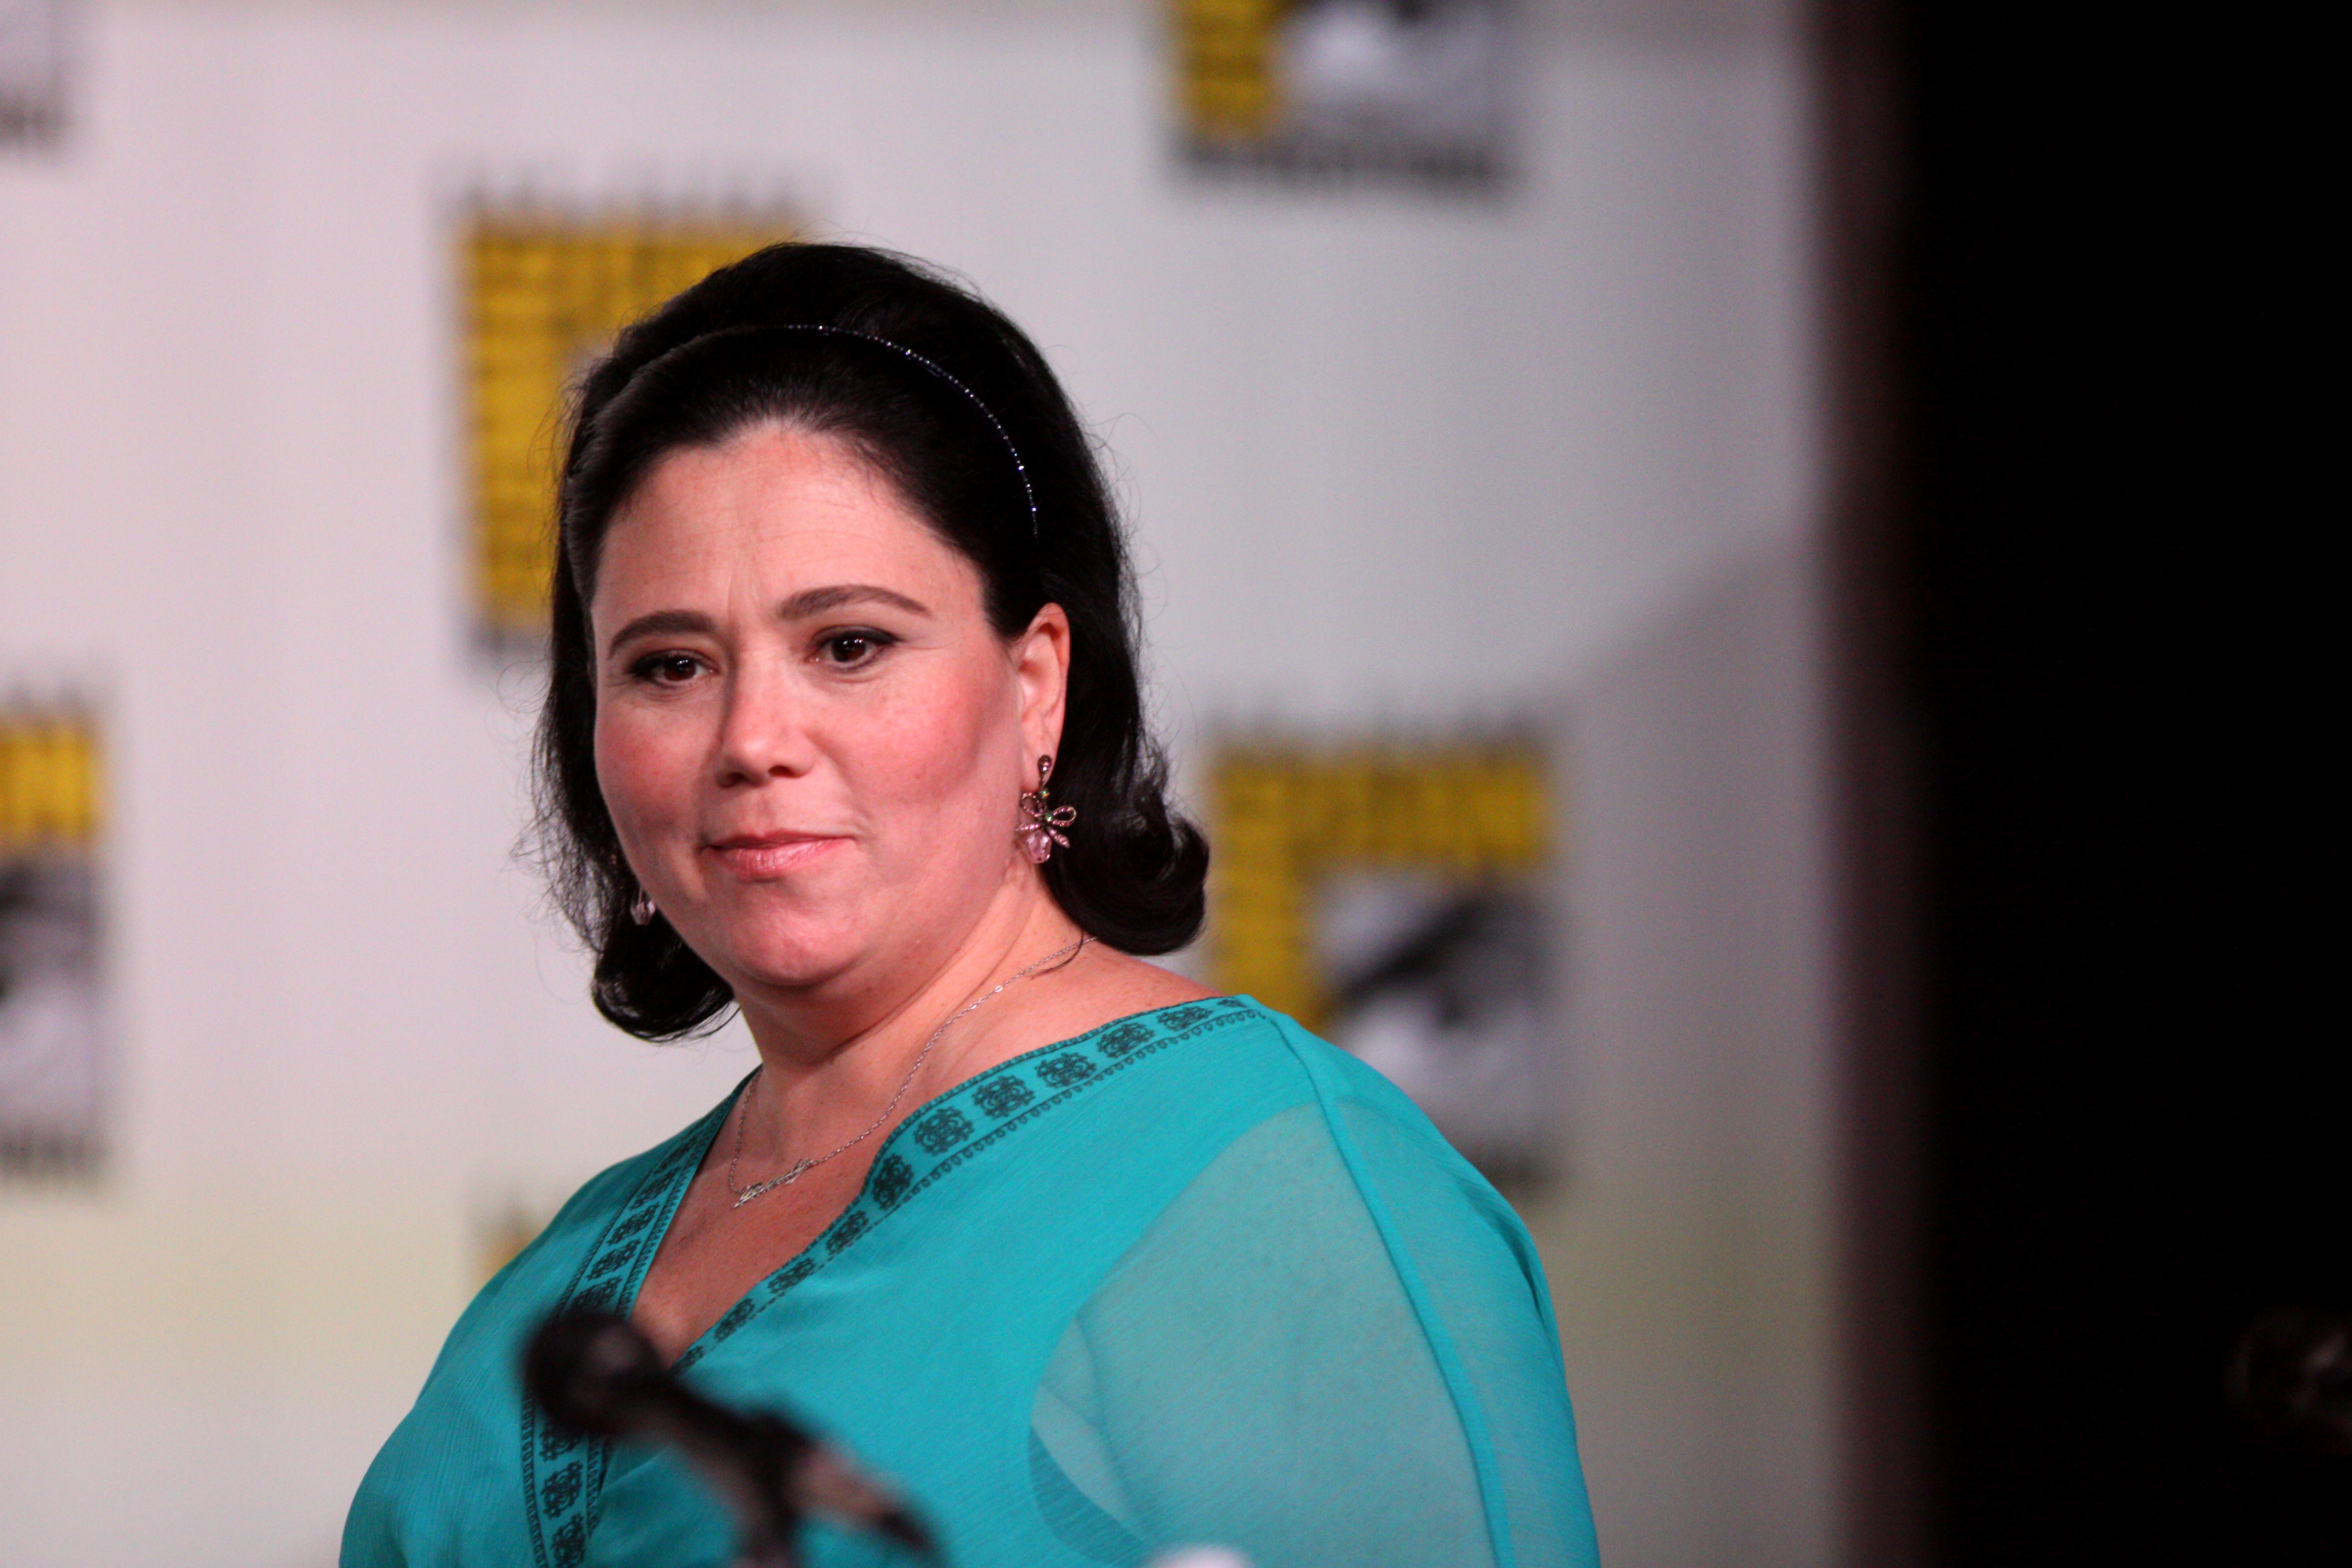 alex borstein imdbalex borstein young, alex borstein ethnicelebs, alex borstein power rangers, alex borstein instagram, alex borstein, alex borstein net worth, alex borstein family guy, alex borstein interview, alex borstein twitter, alex borstein friends, alex borstein height, alex borstein wiki, alex borstein jackson douglas, alex borstein shameless, alex borstein imdb, alex borstein mad tv, alex borstein husband, alex borstein weight loss, alex borstein hot, alex borstein harp